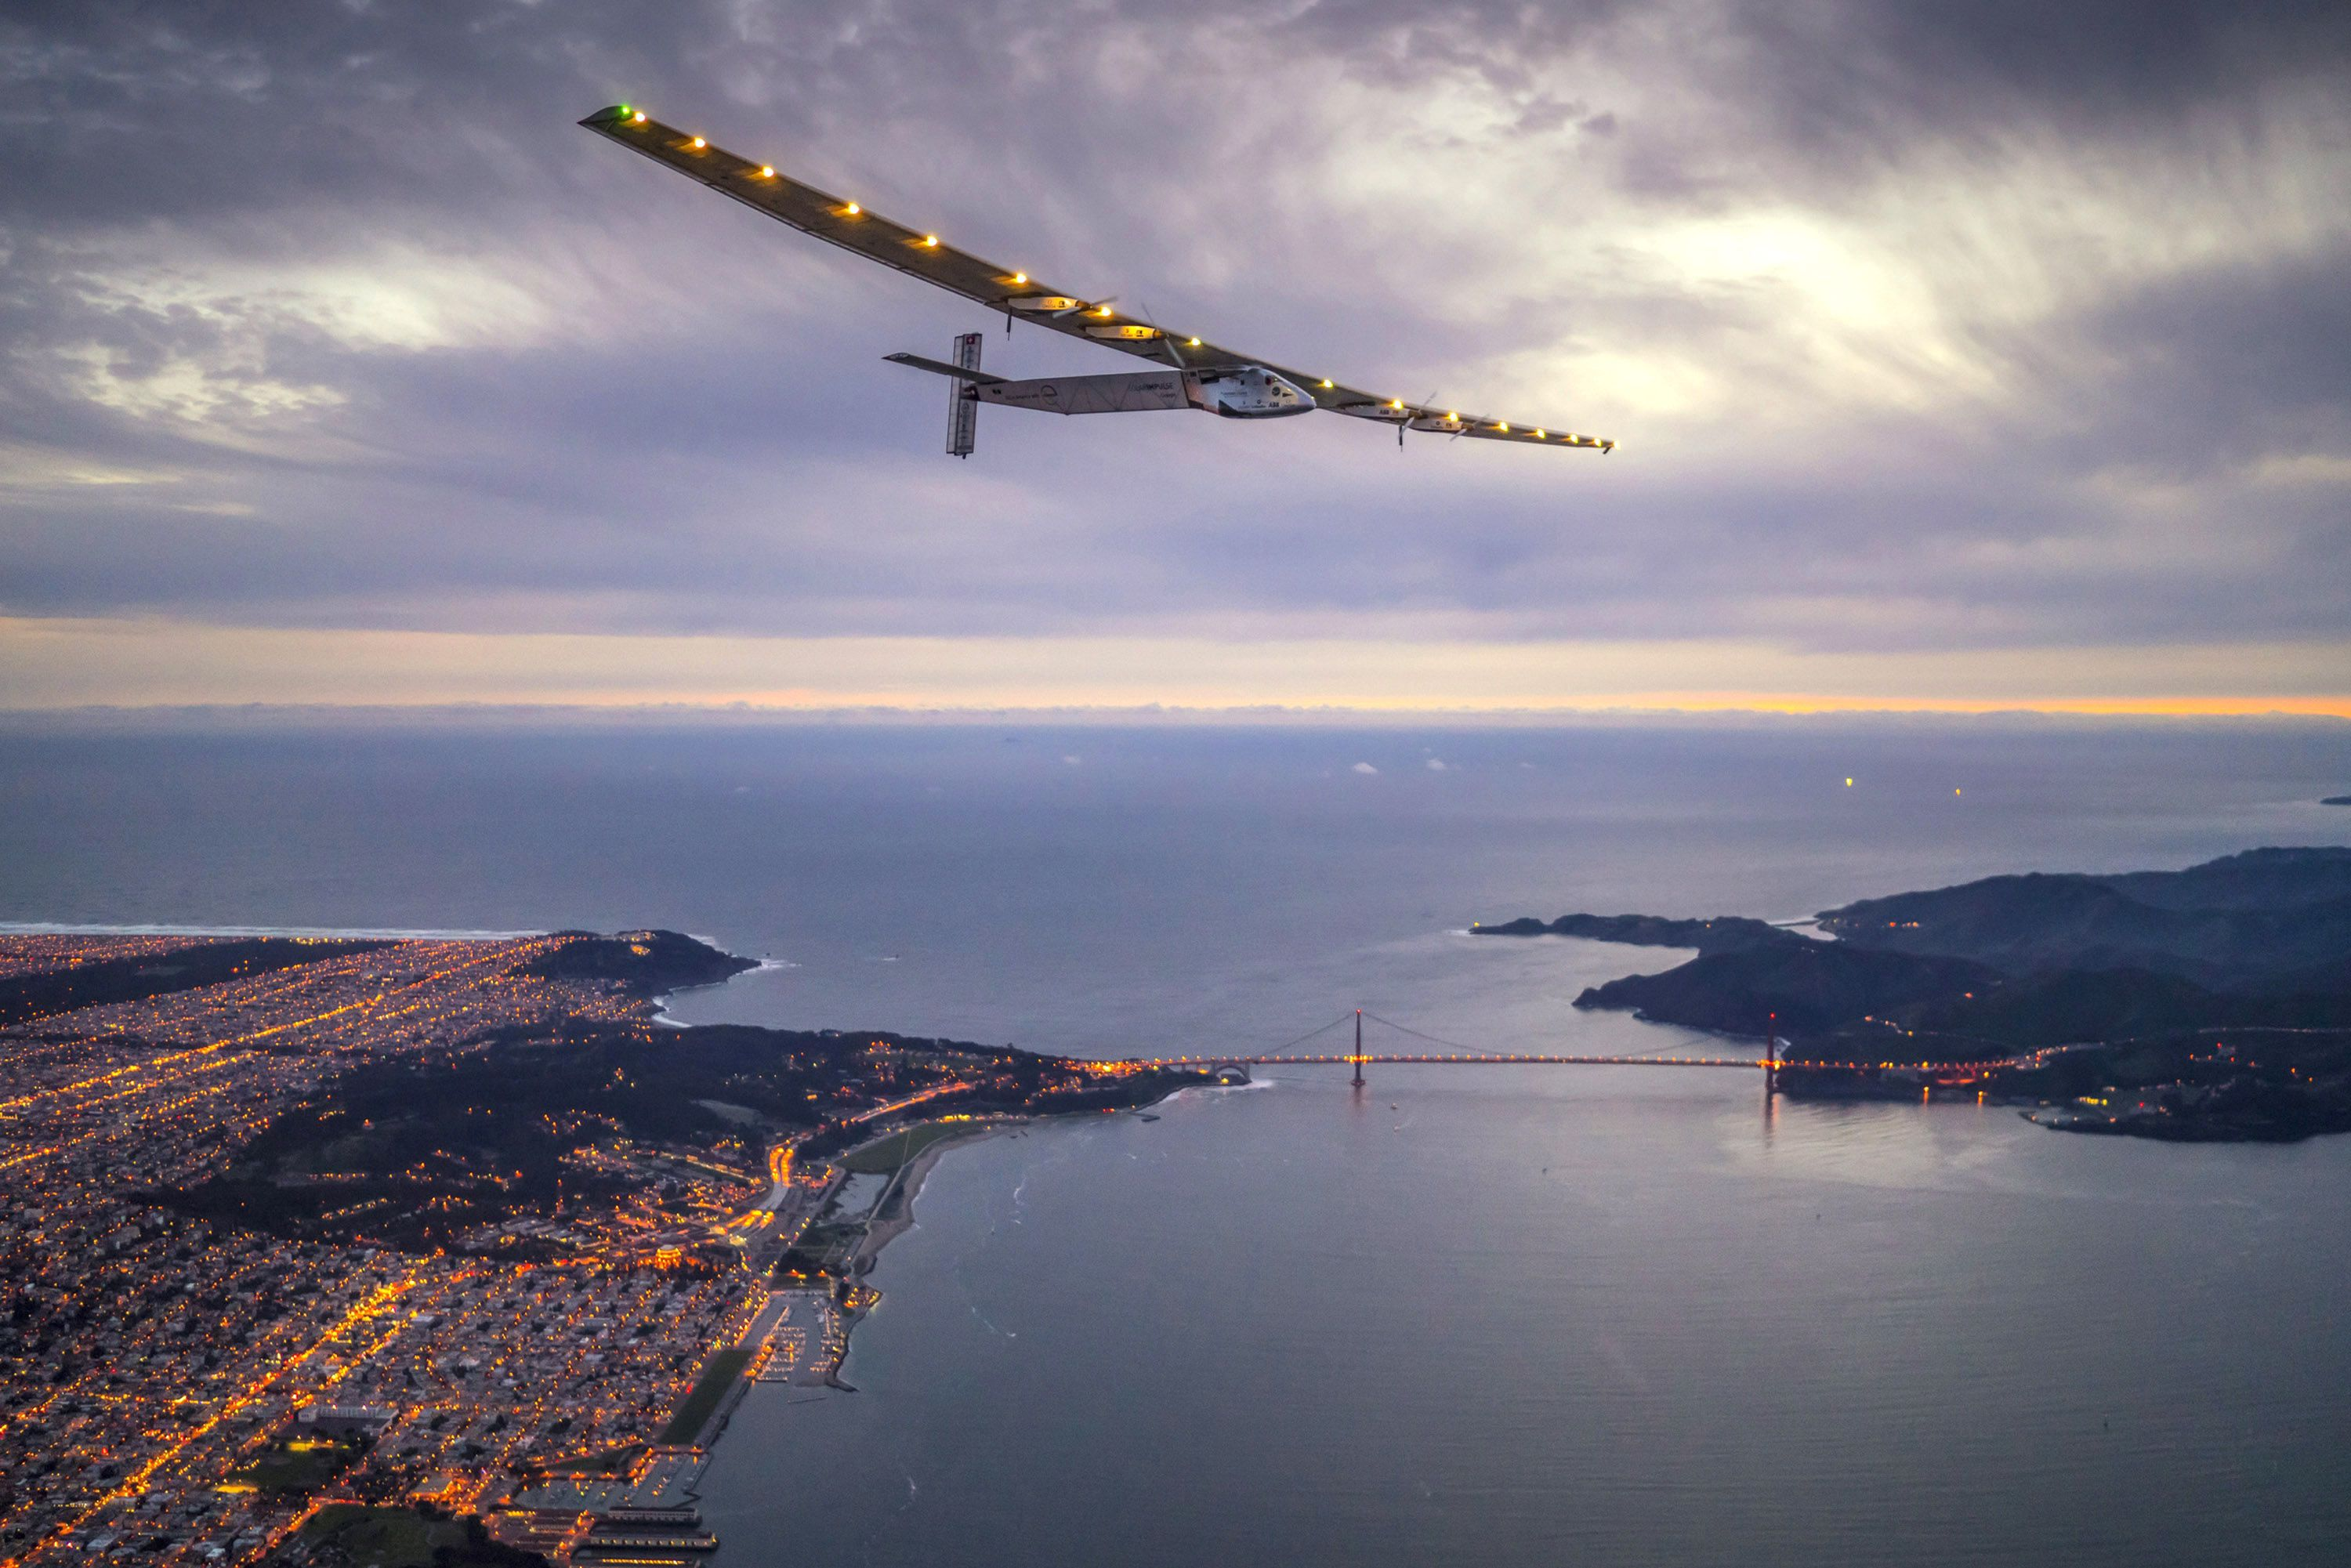 Solar Impulse 2 Lands In Silicon Valley After Pacific Crossing